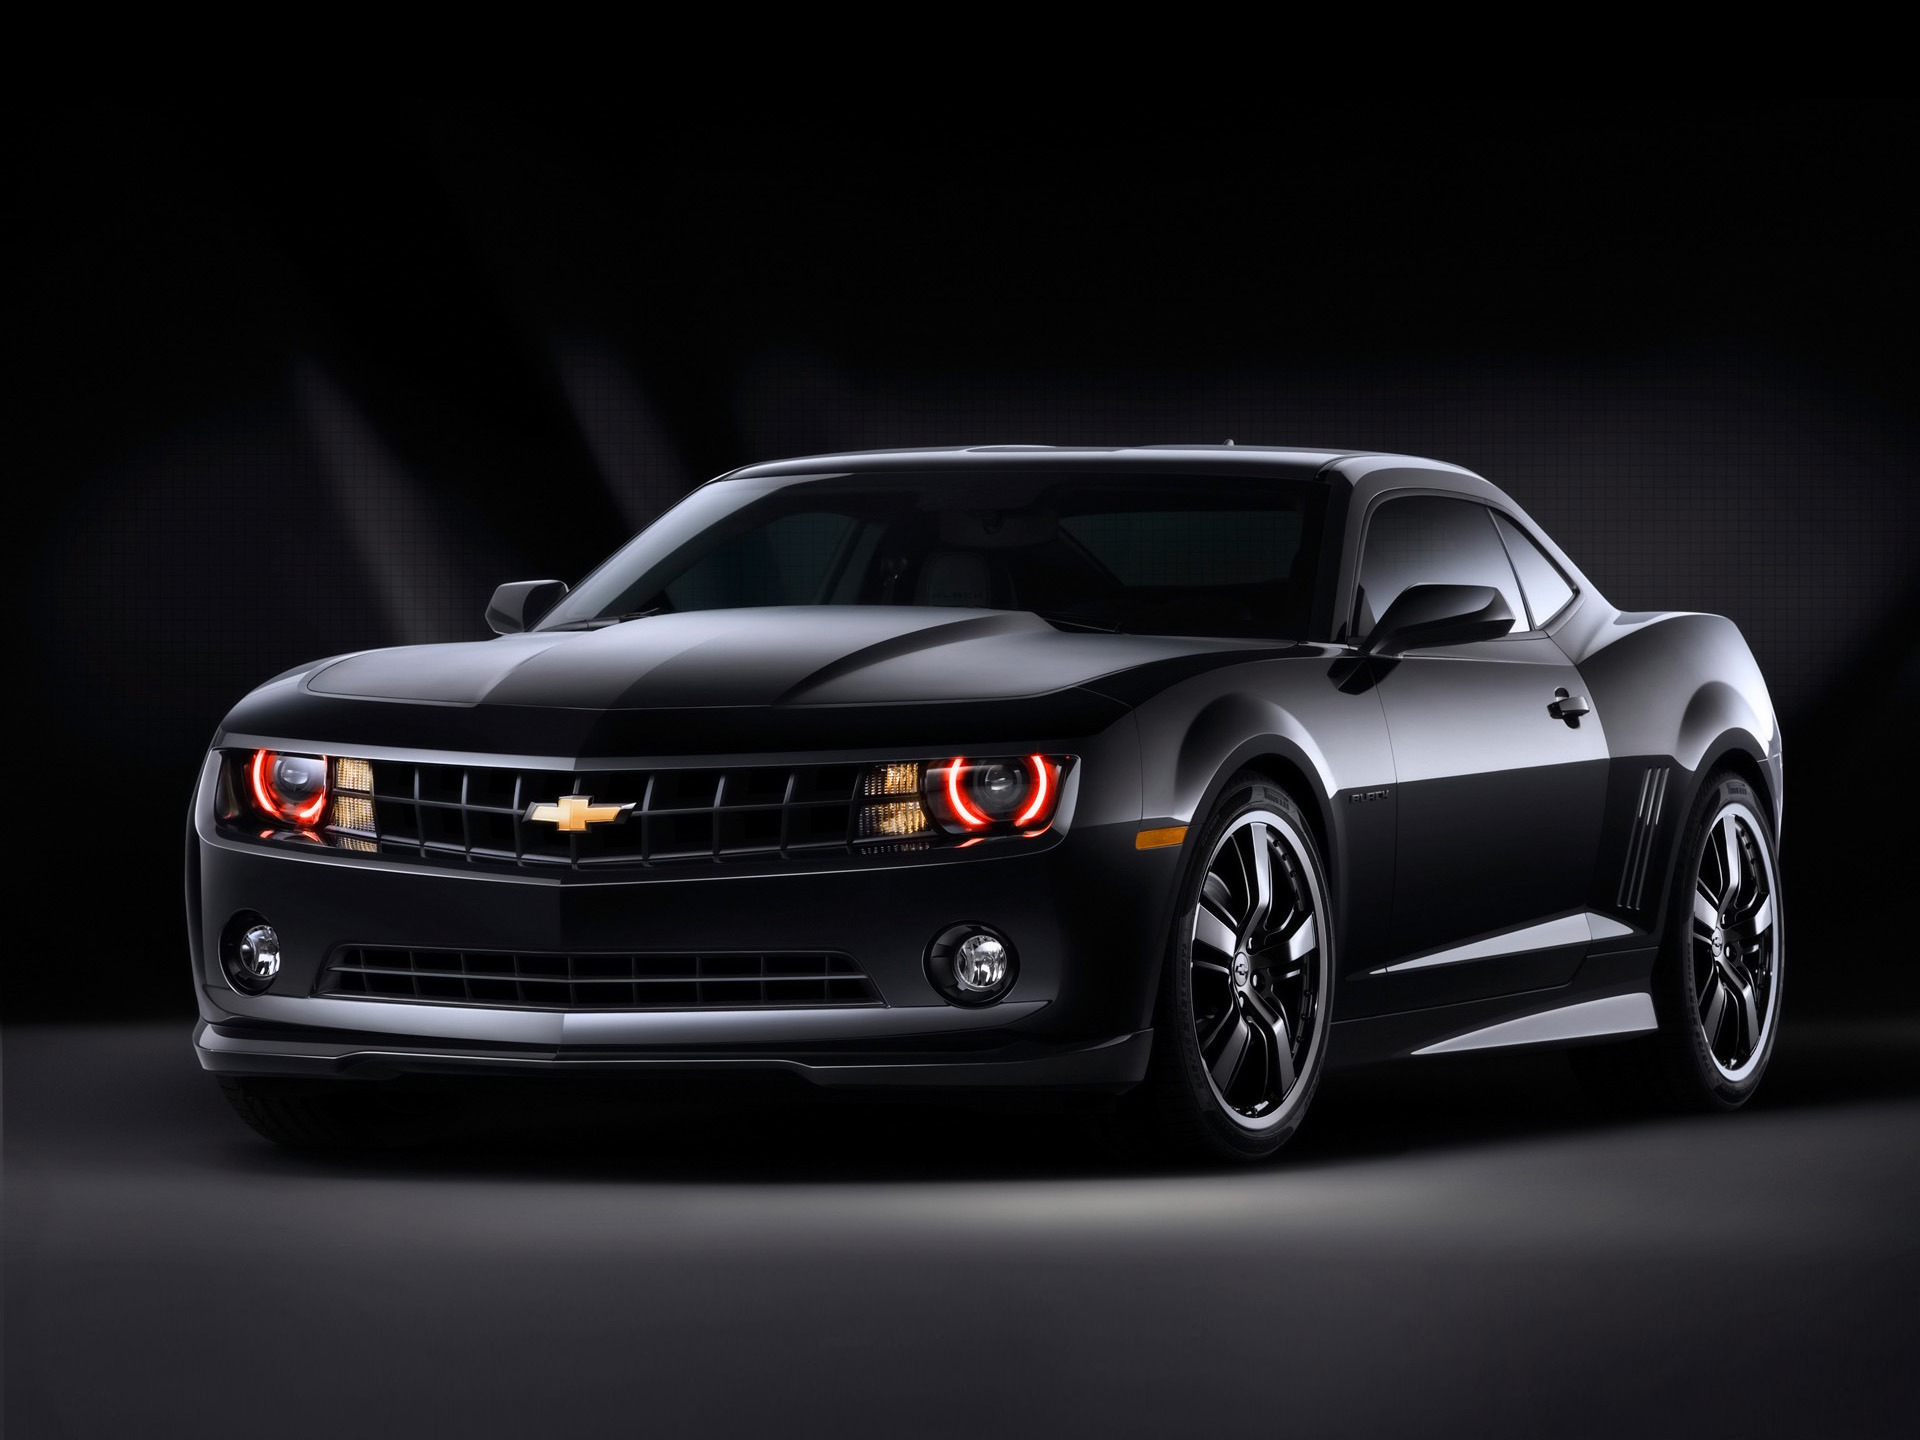 chevrolet camaro black concept wallpaper chevrolet cars wallpapers